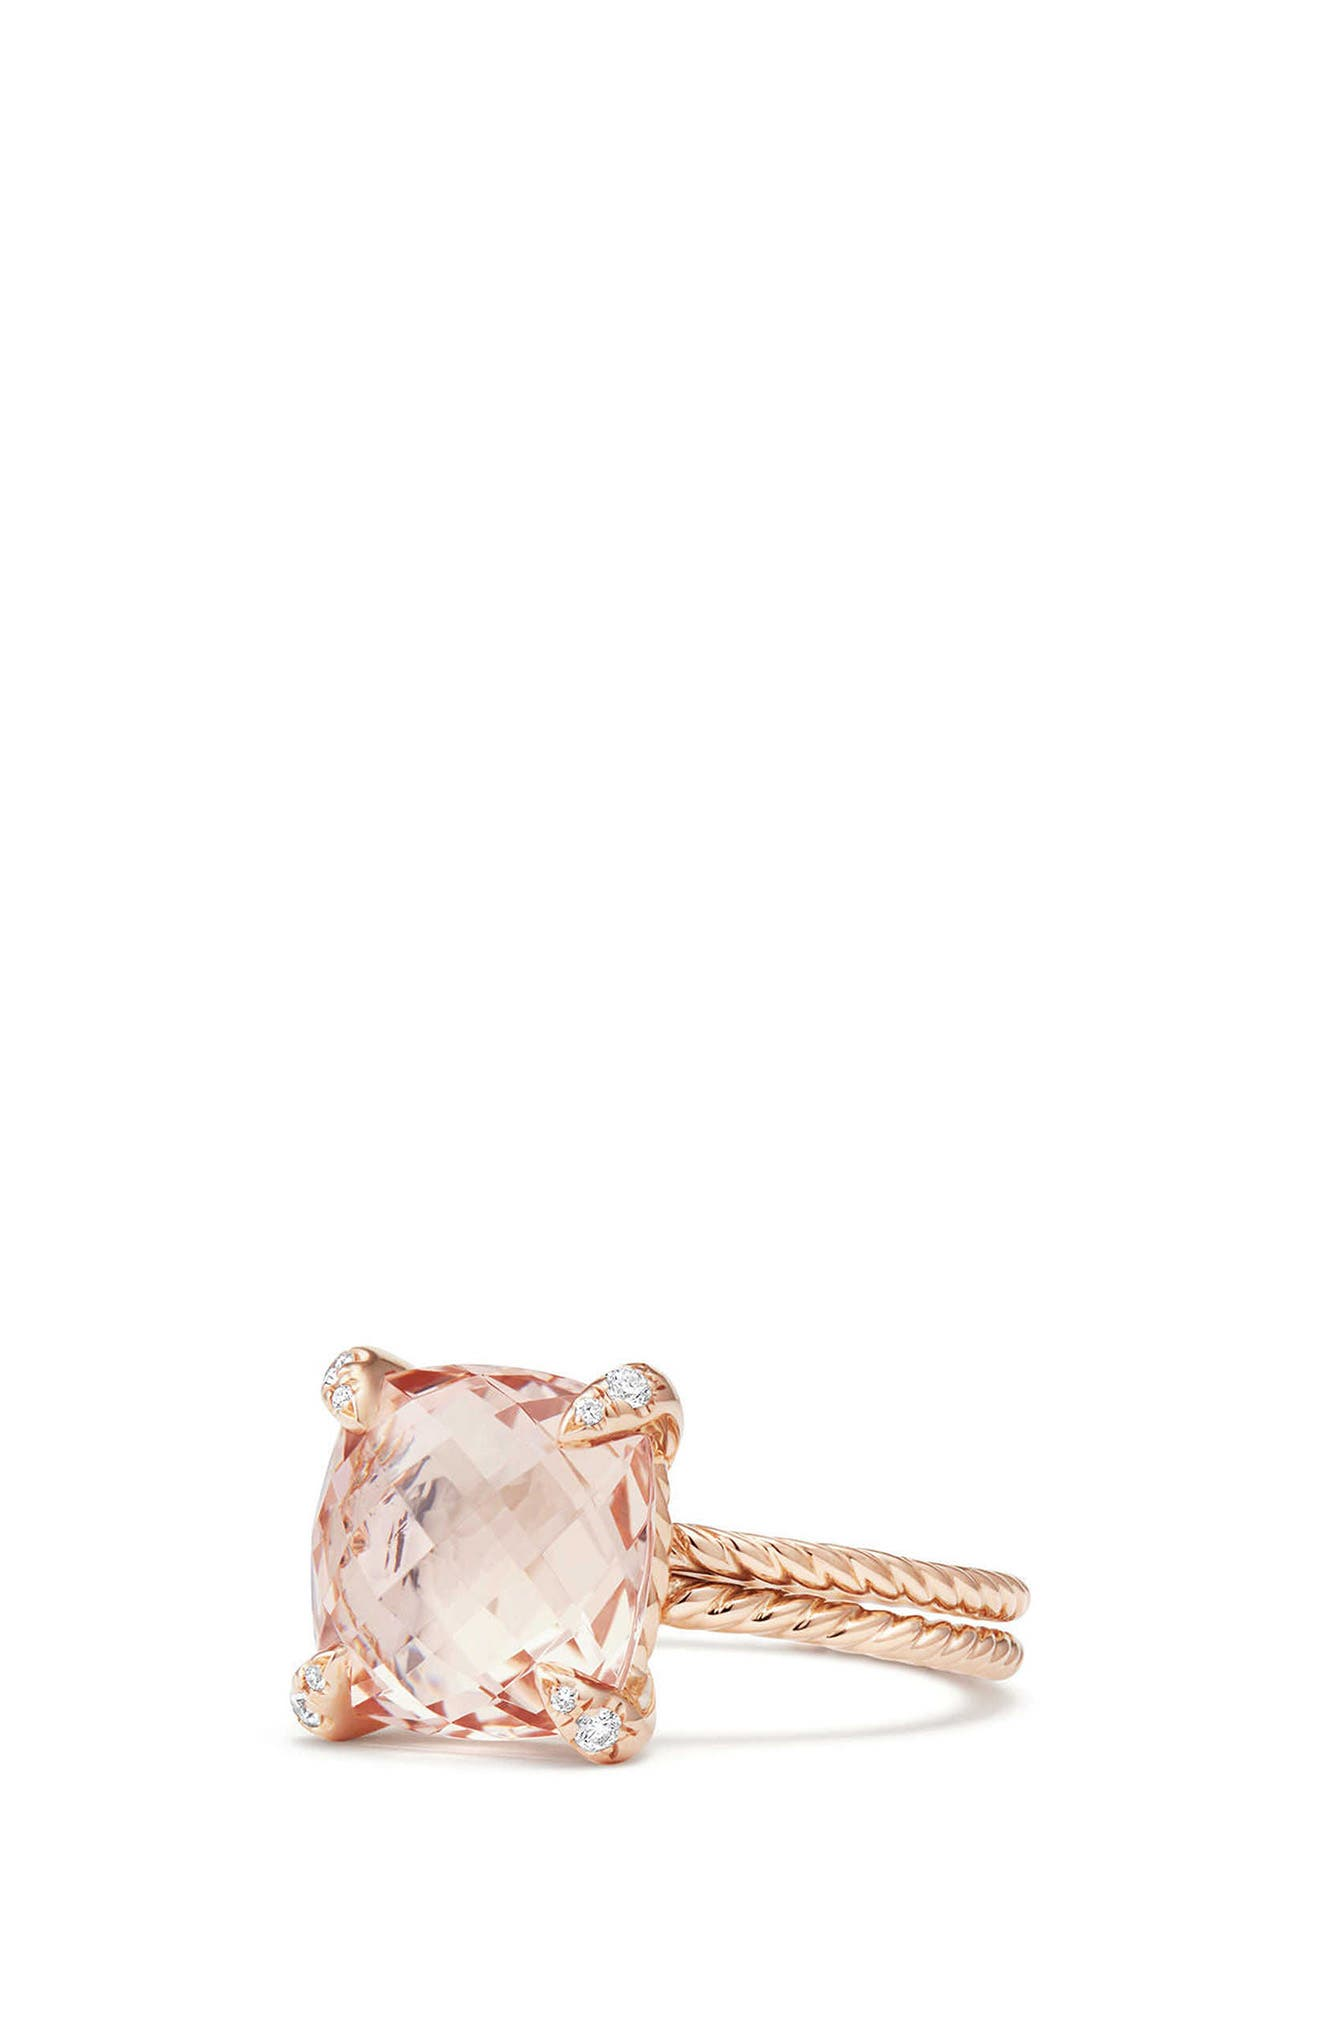 Chatelaine<sup>®</sup> Morganite & Diamond Ring in 18K Rose Gold,                             Alternate thumbnail 3, color,